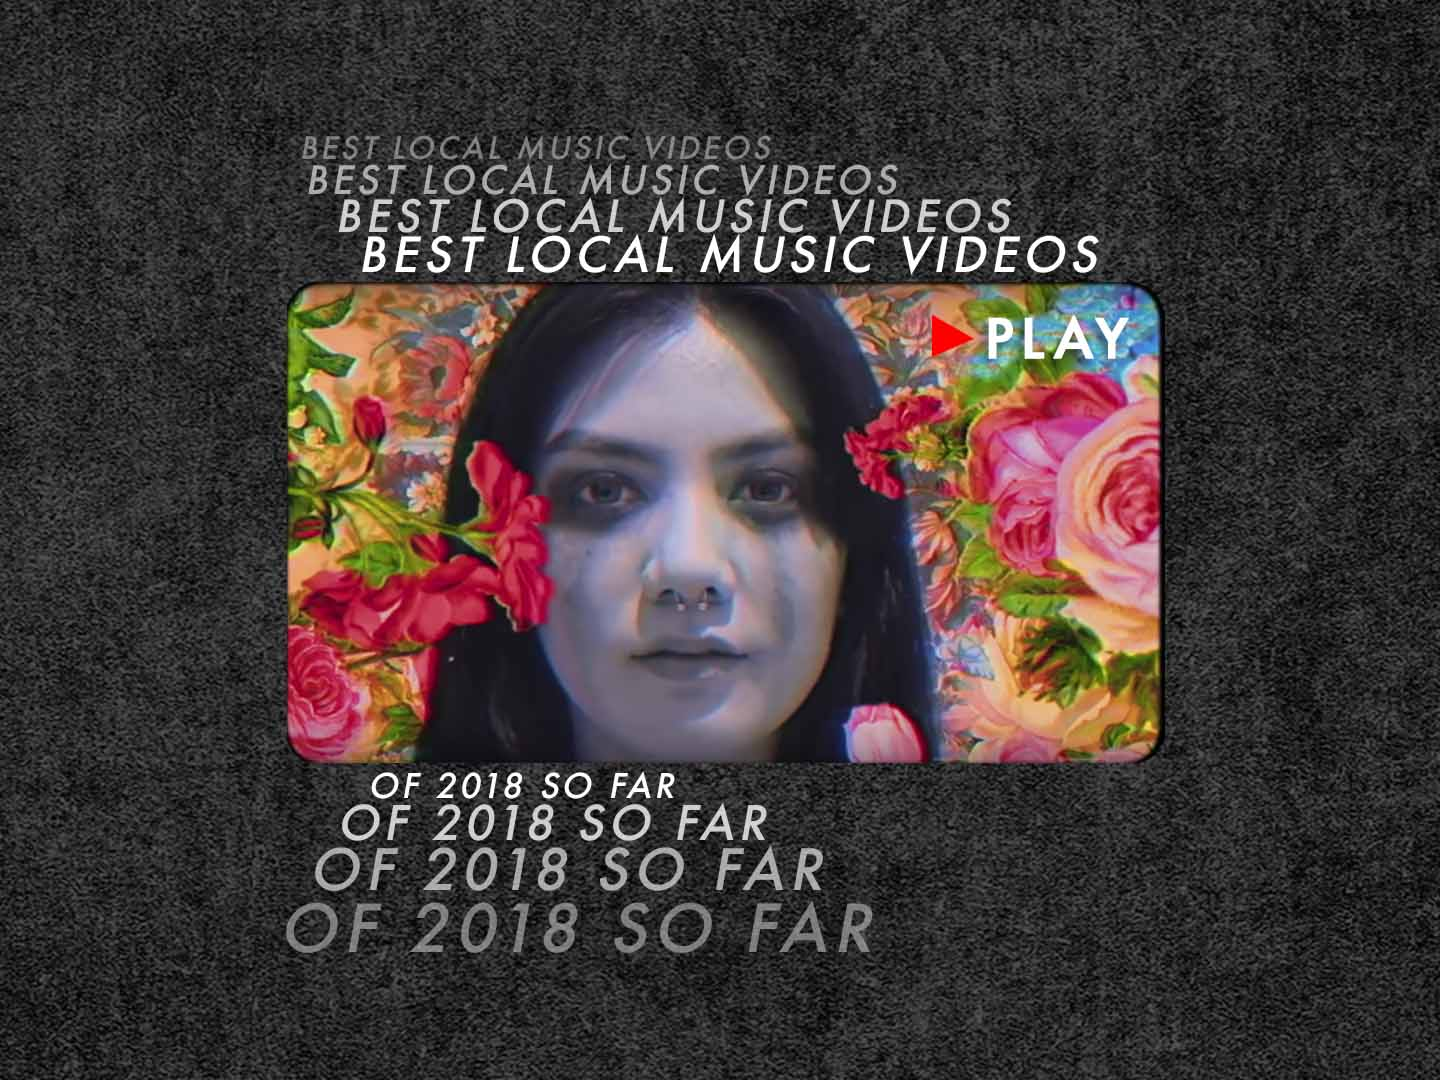 Best local music videos of 2018